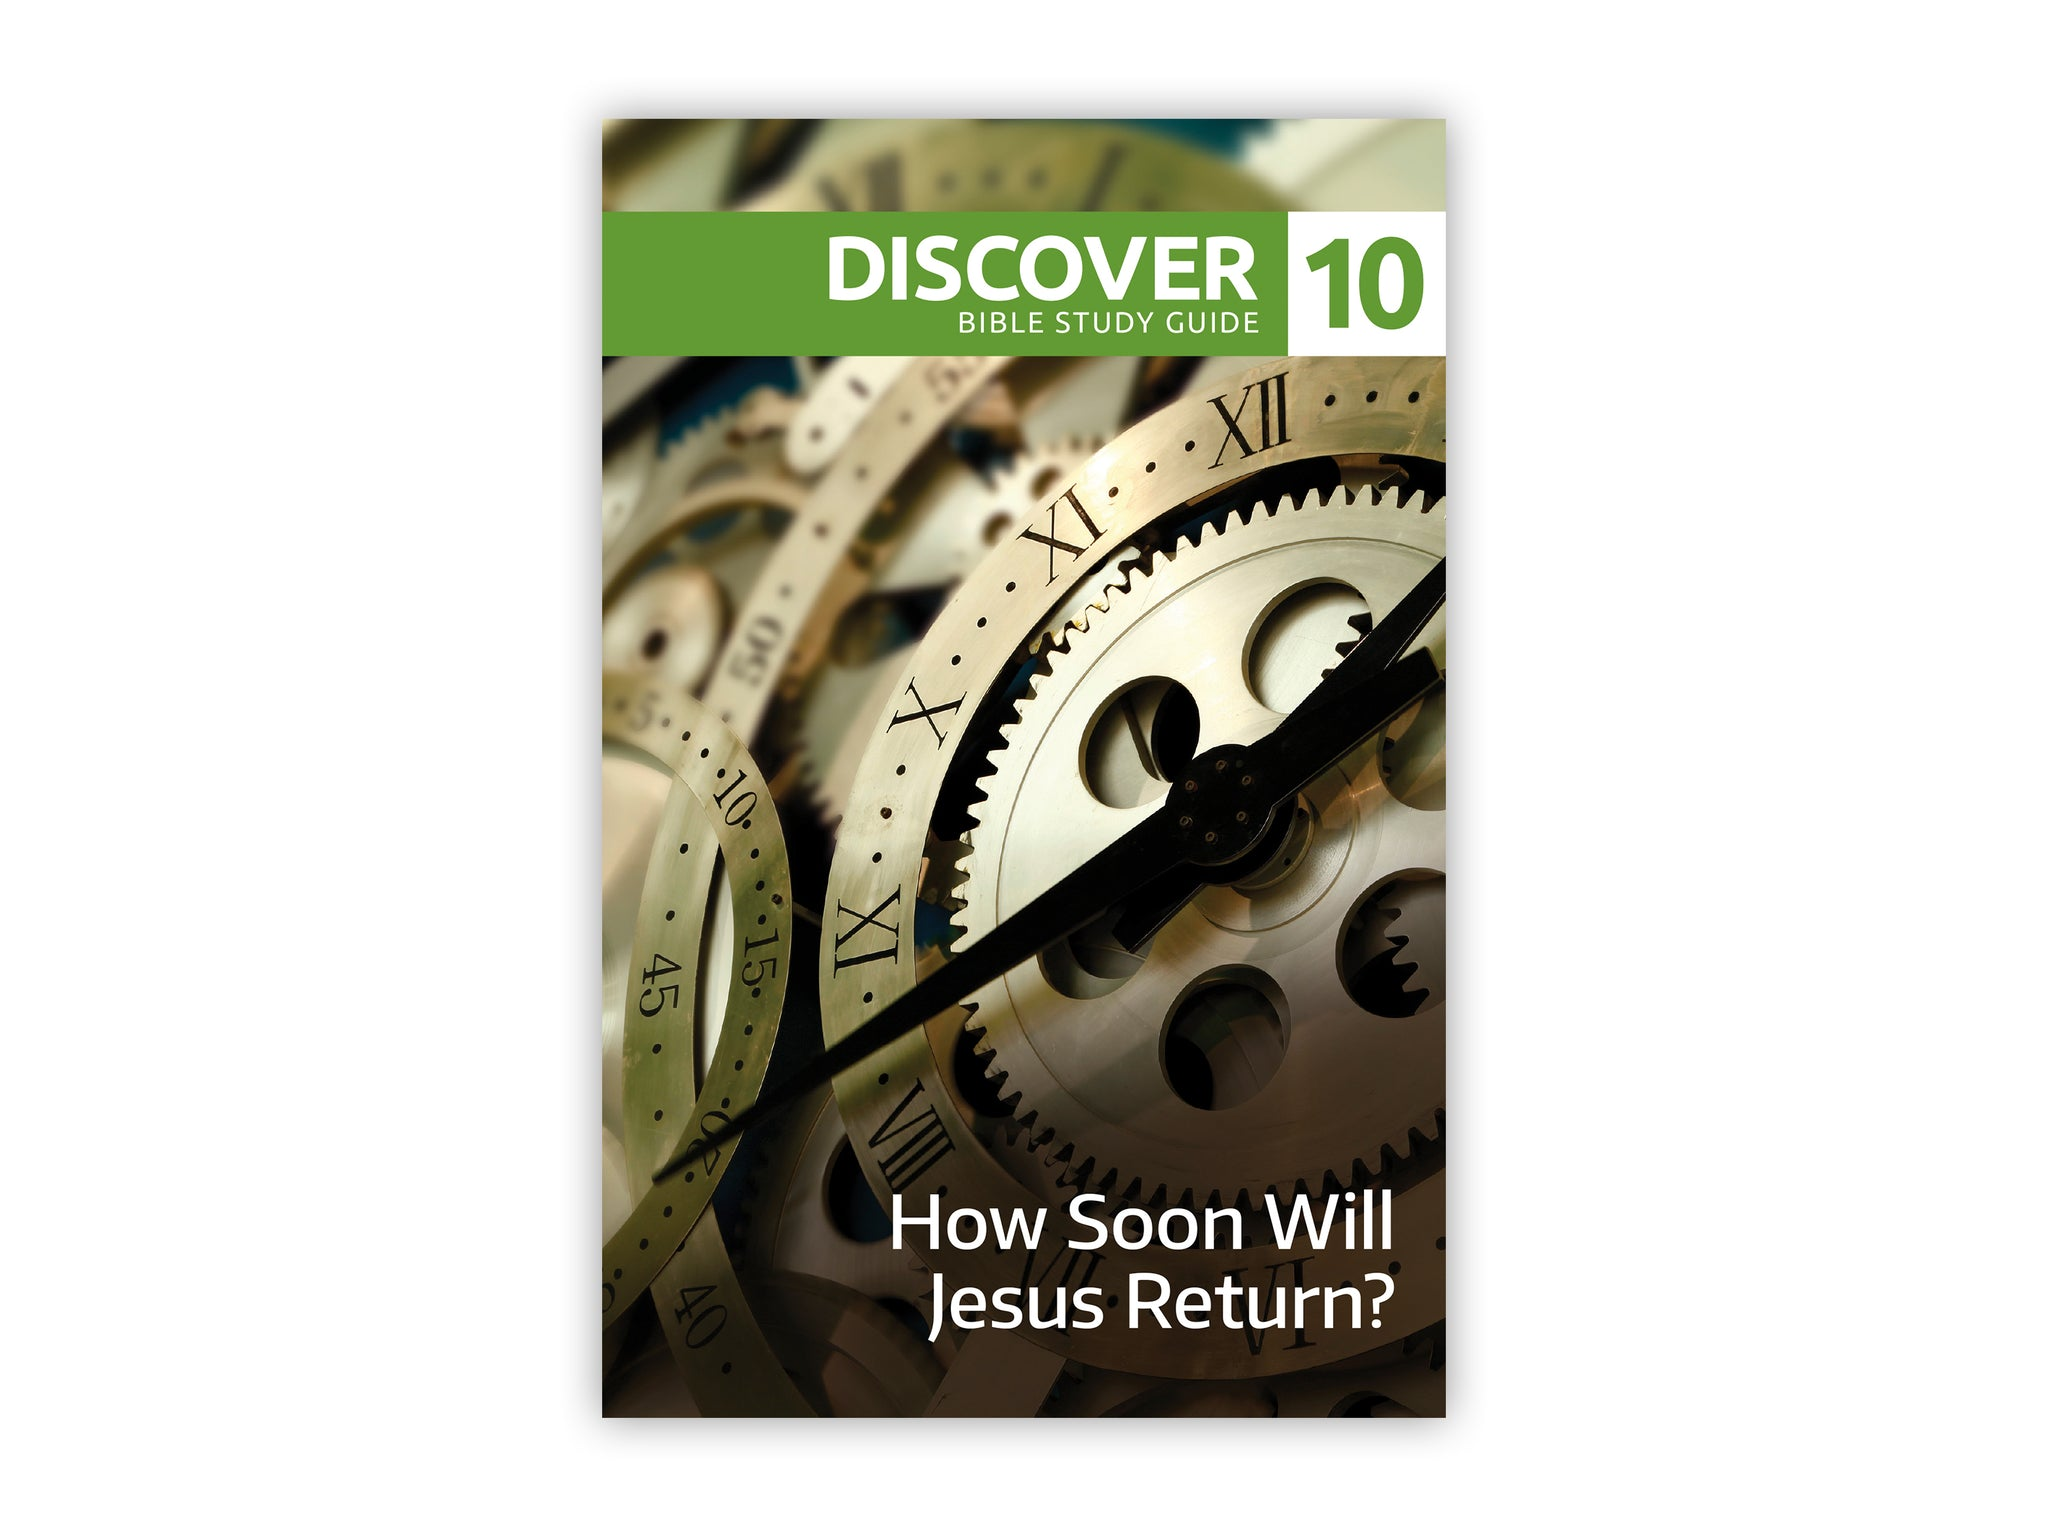 Discover Bible Study Guide #10 - How Soon Will Jesus Return?